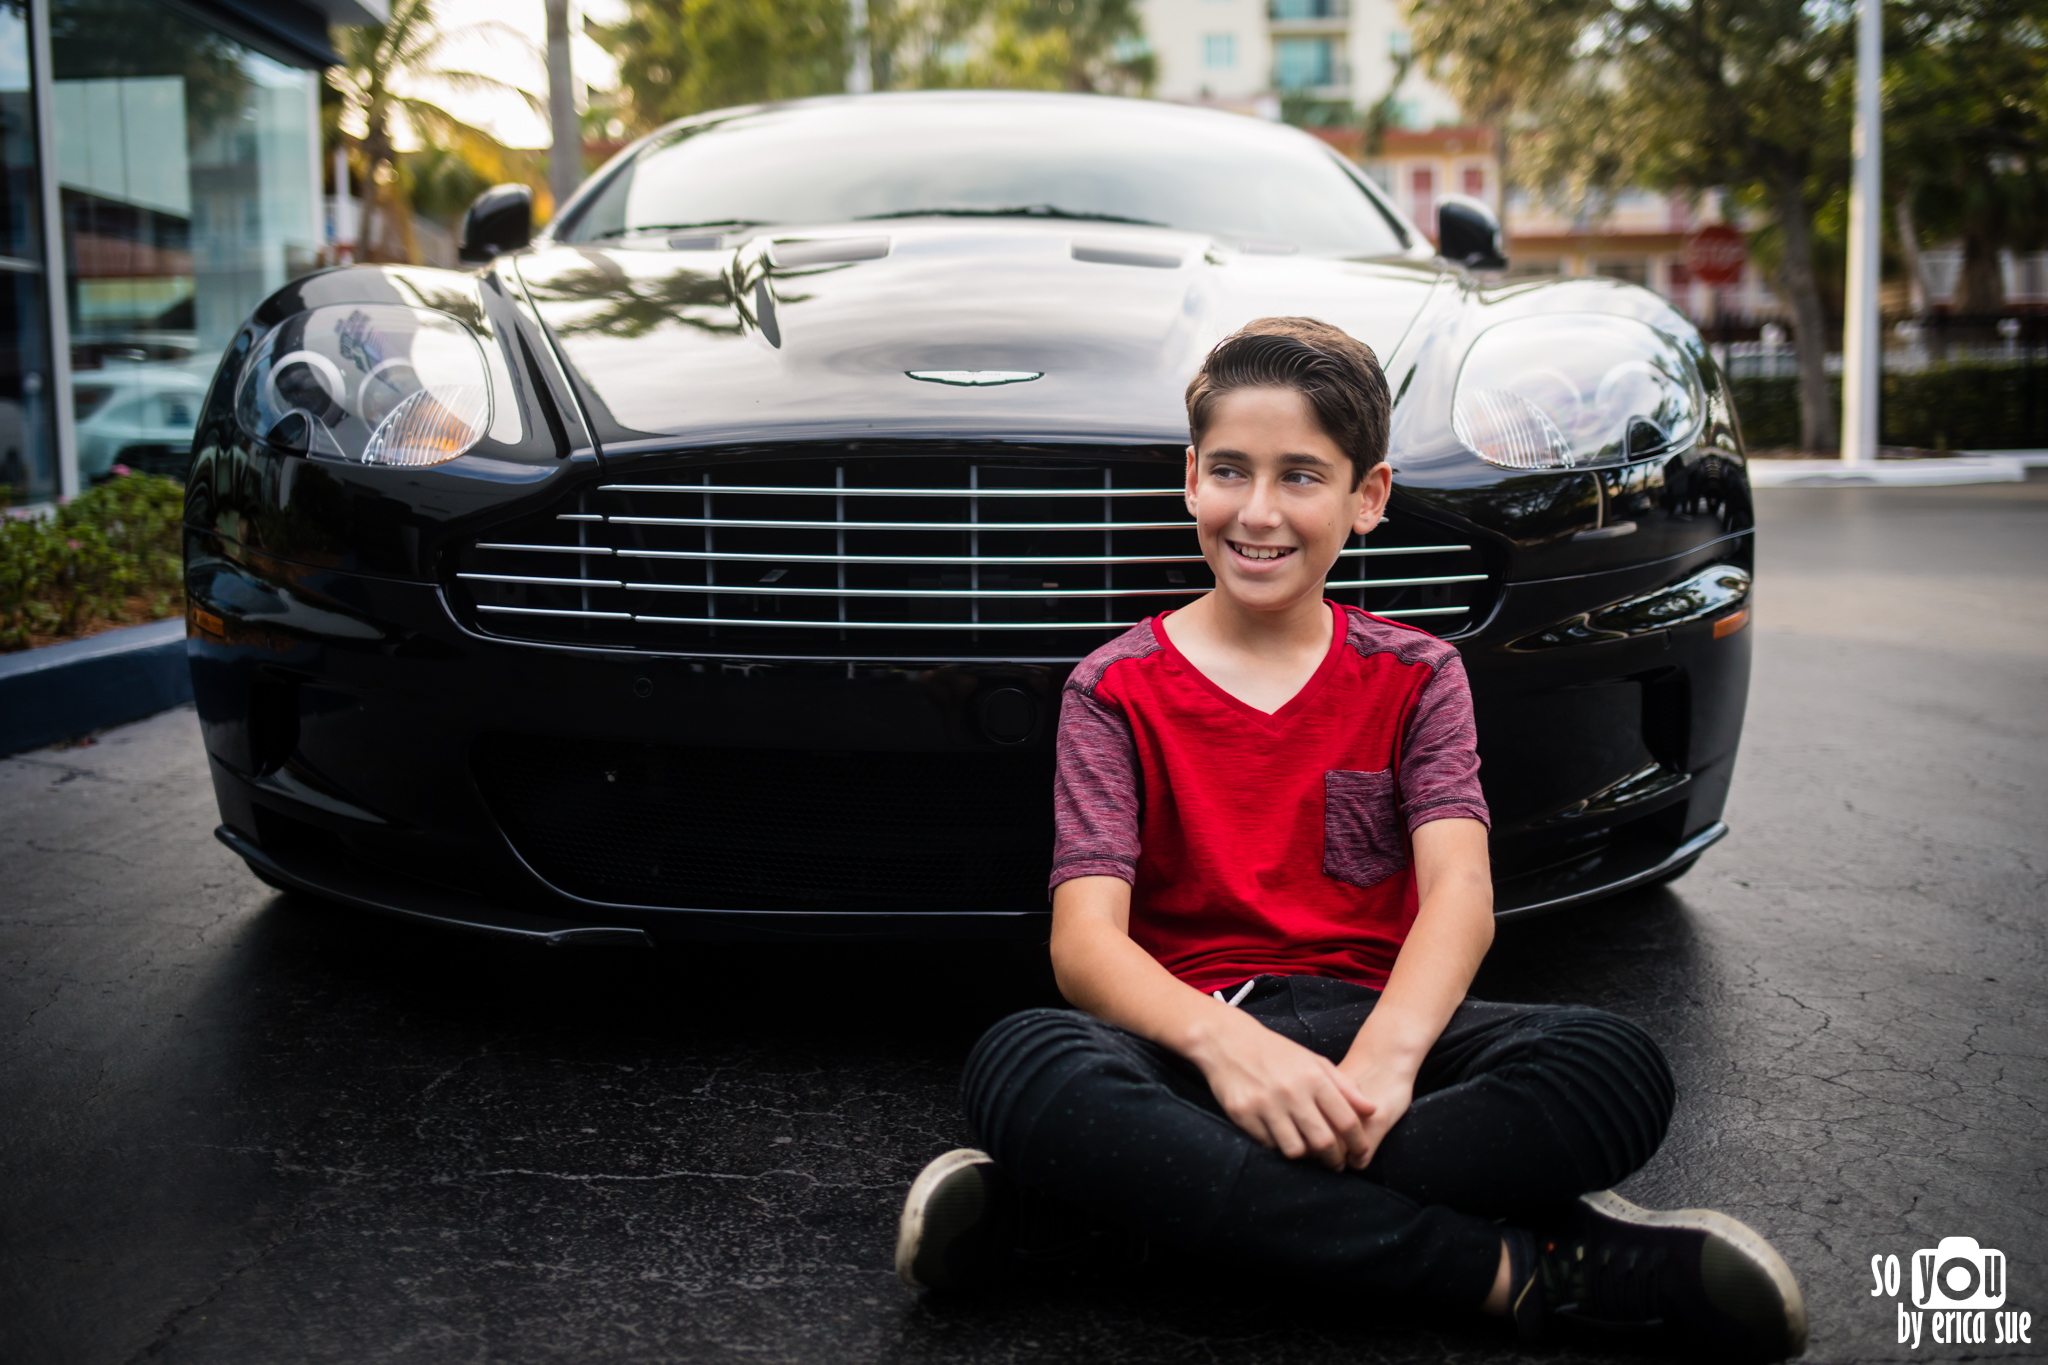 so-you-by-erica-sue-mitzvah-photographer-collection-luxury-car-ft-lauderdale-4942.jpg